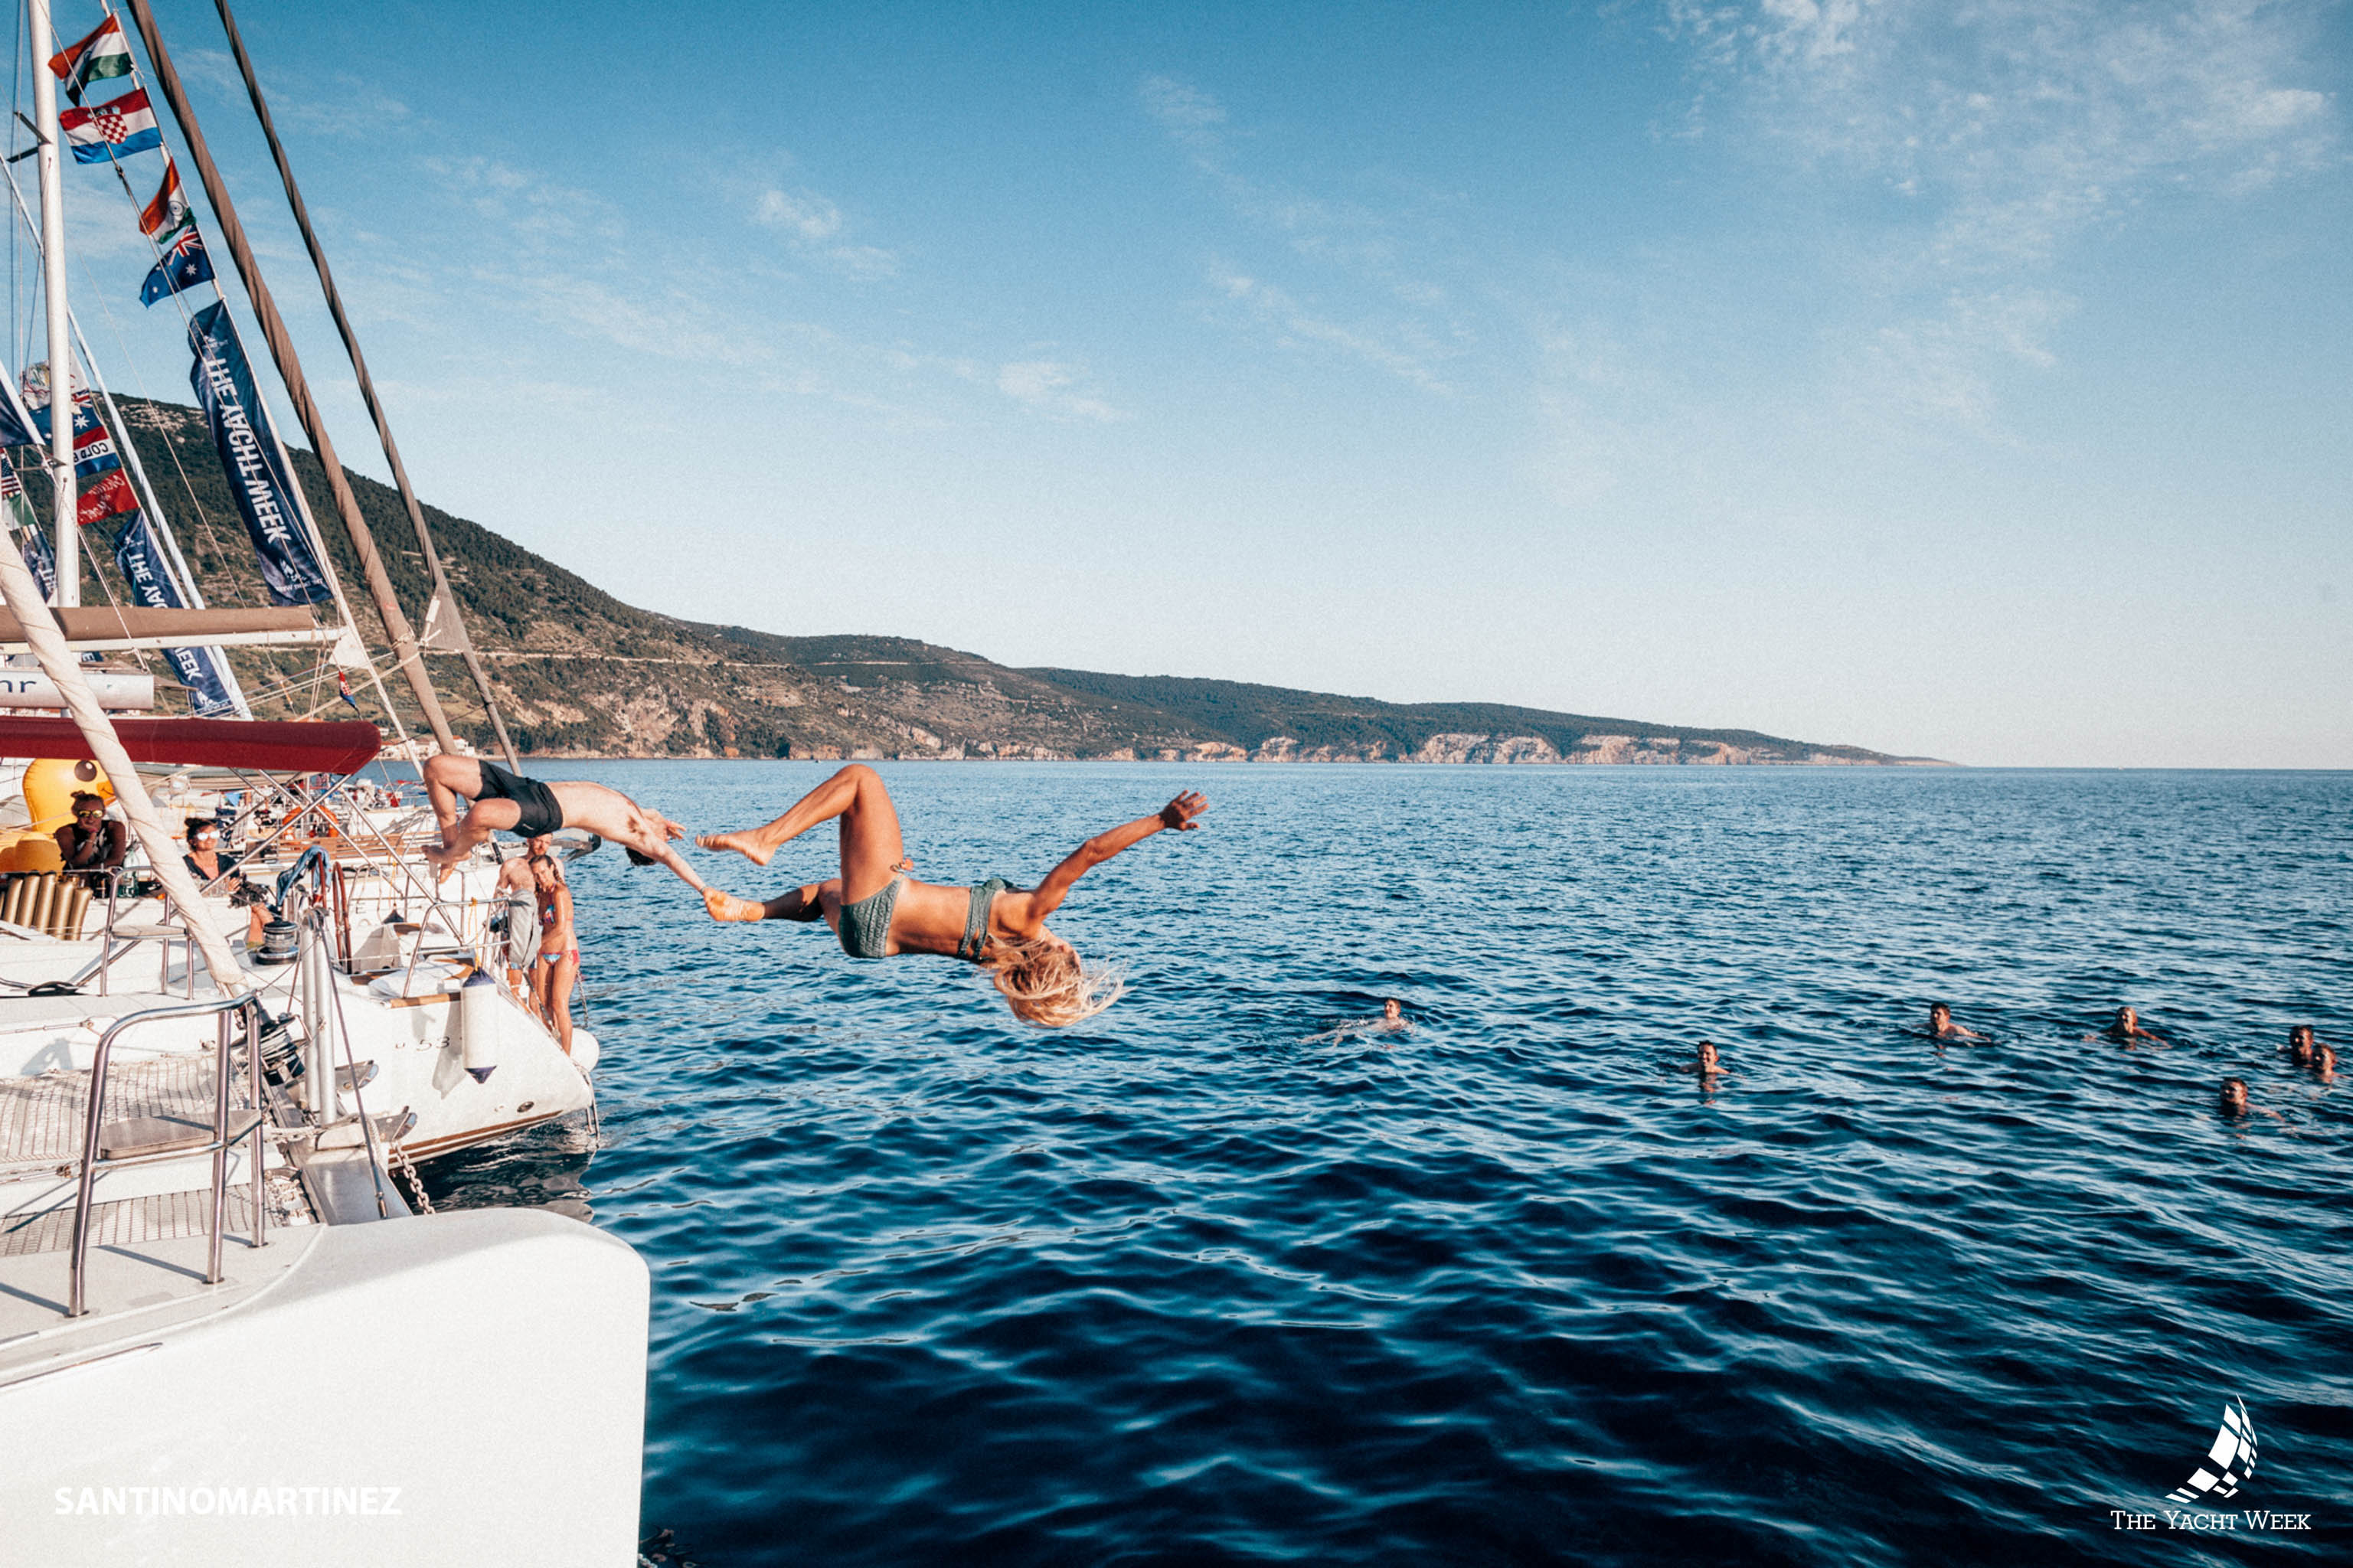 The simplest way to book The Yacht Week